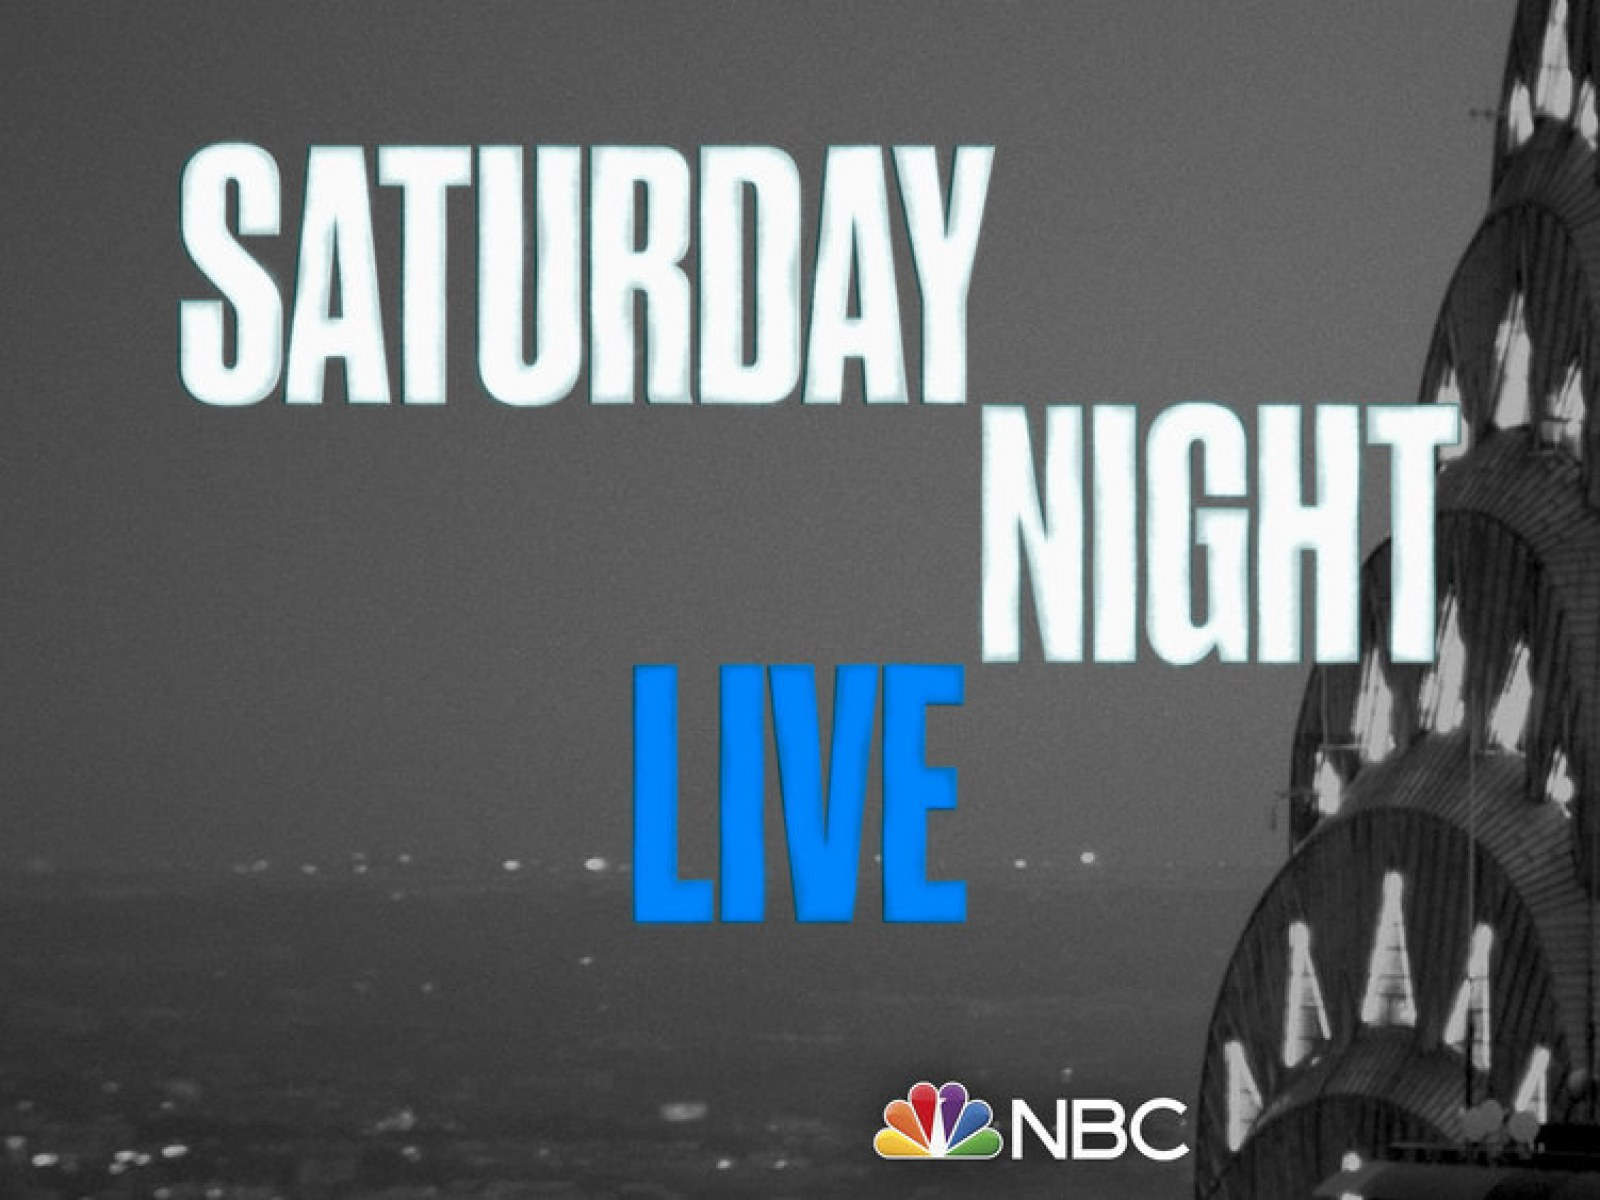 Is Snl On Tonight Season 46 Episode 6 Host Musical Guest